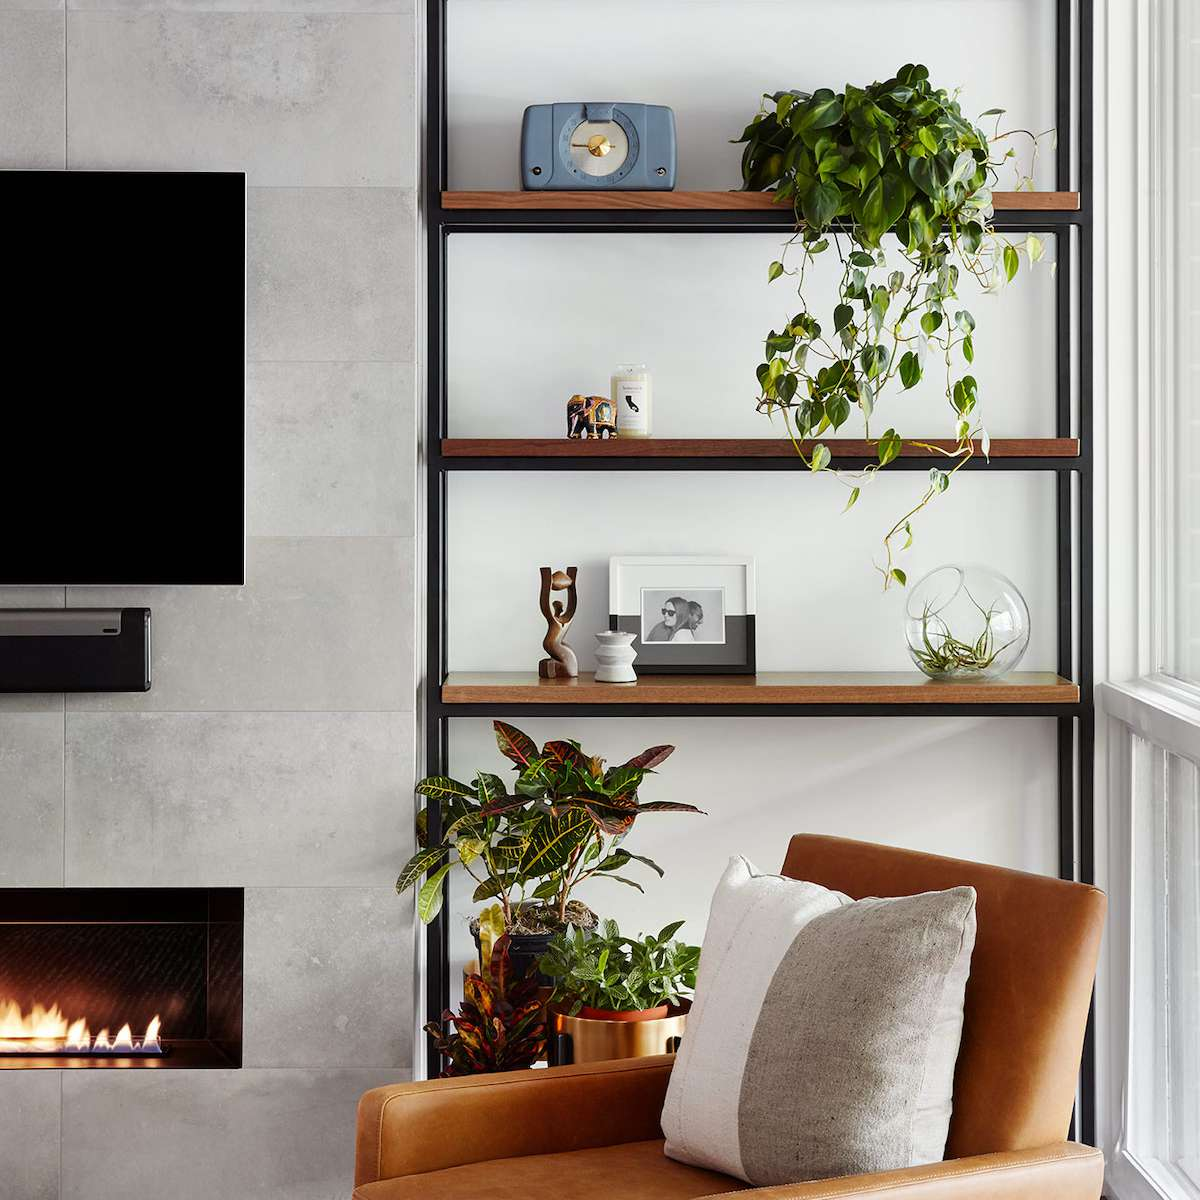 A living room with metal and wooden shelves that have been sparsely decorated